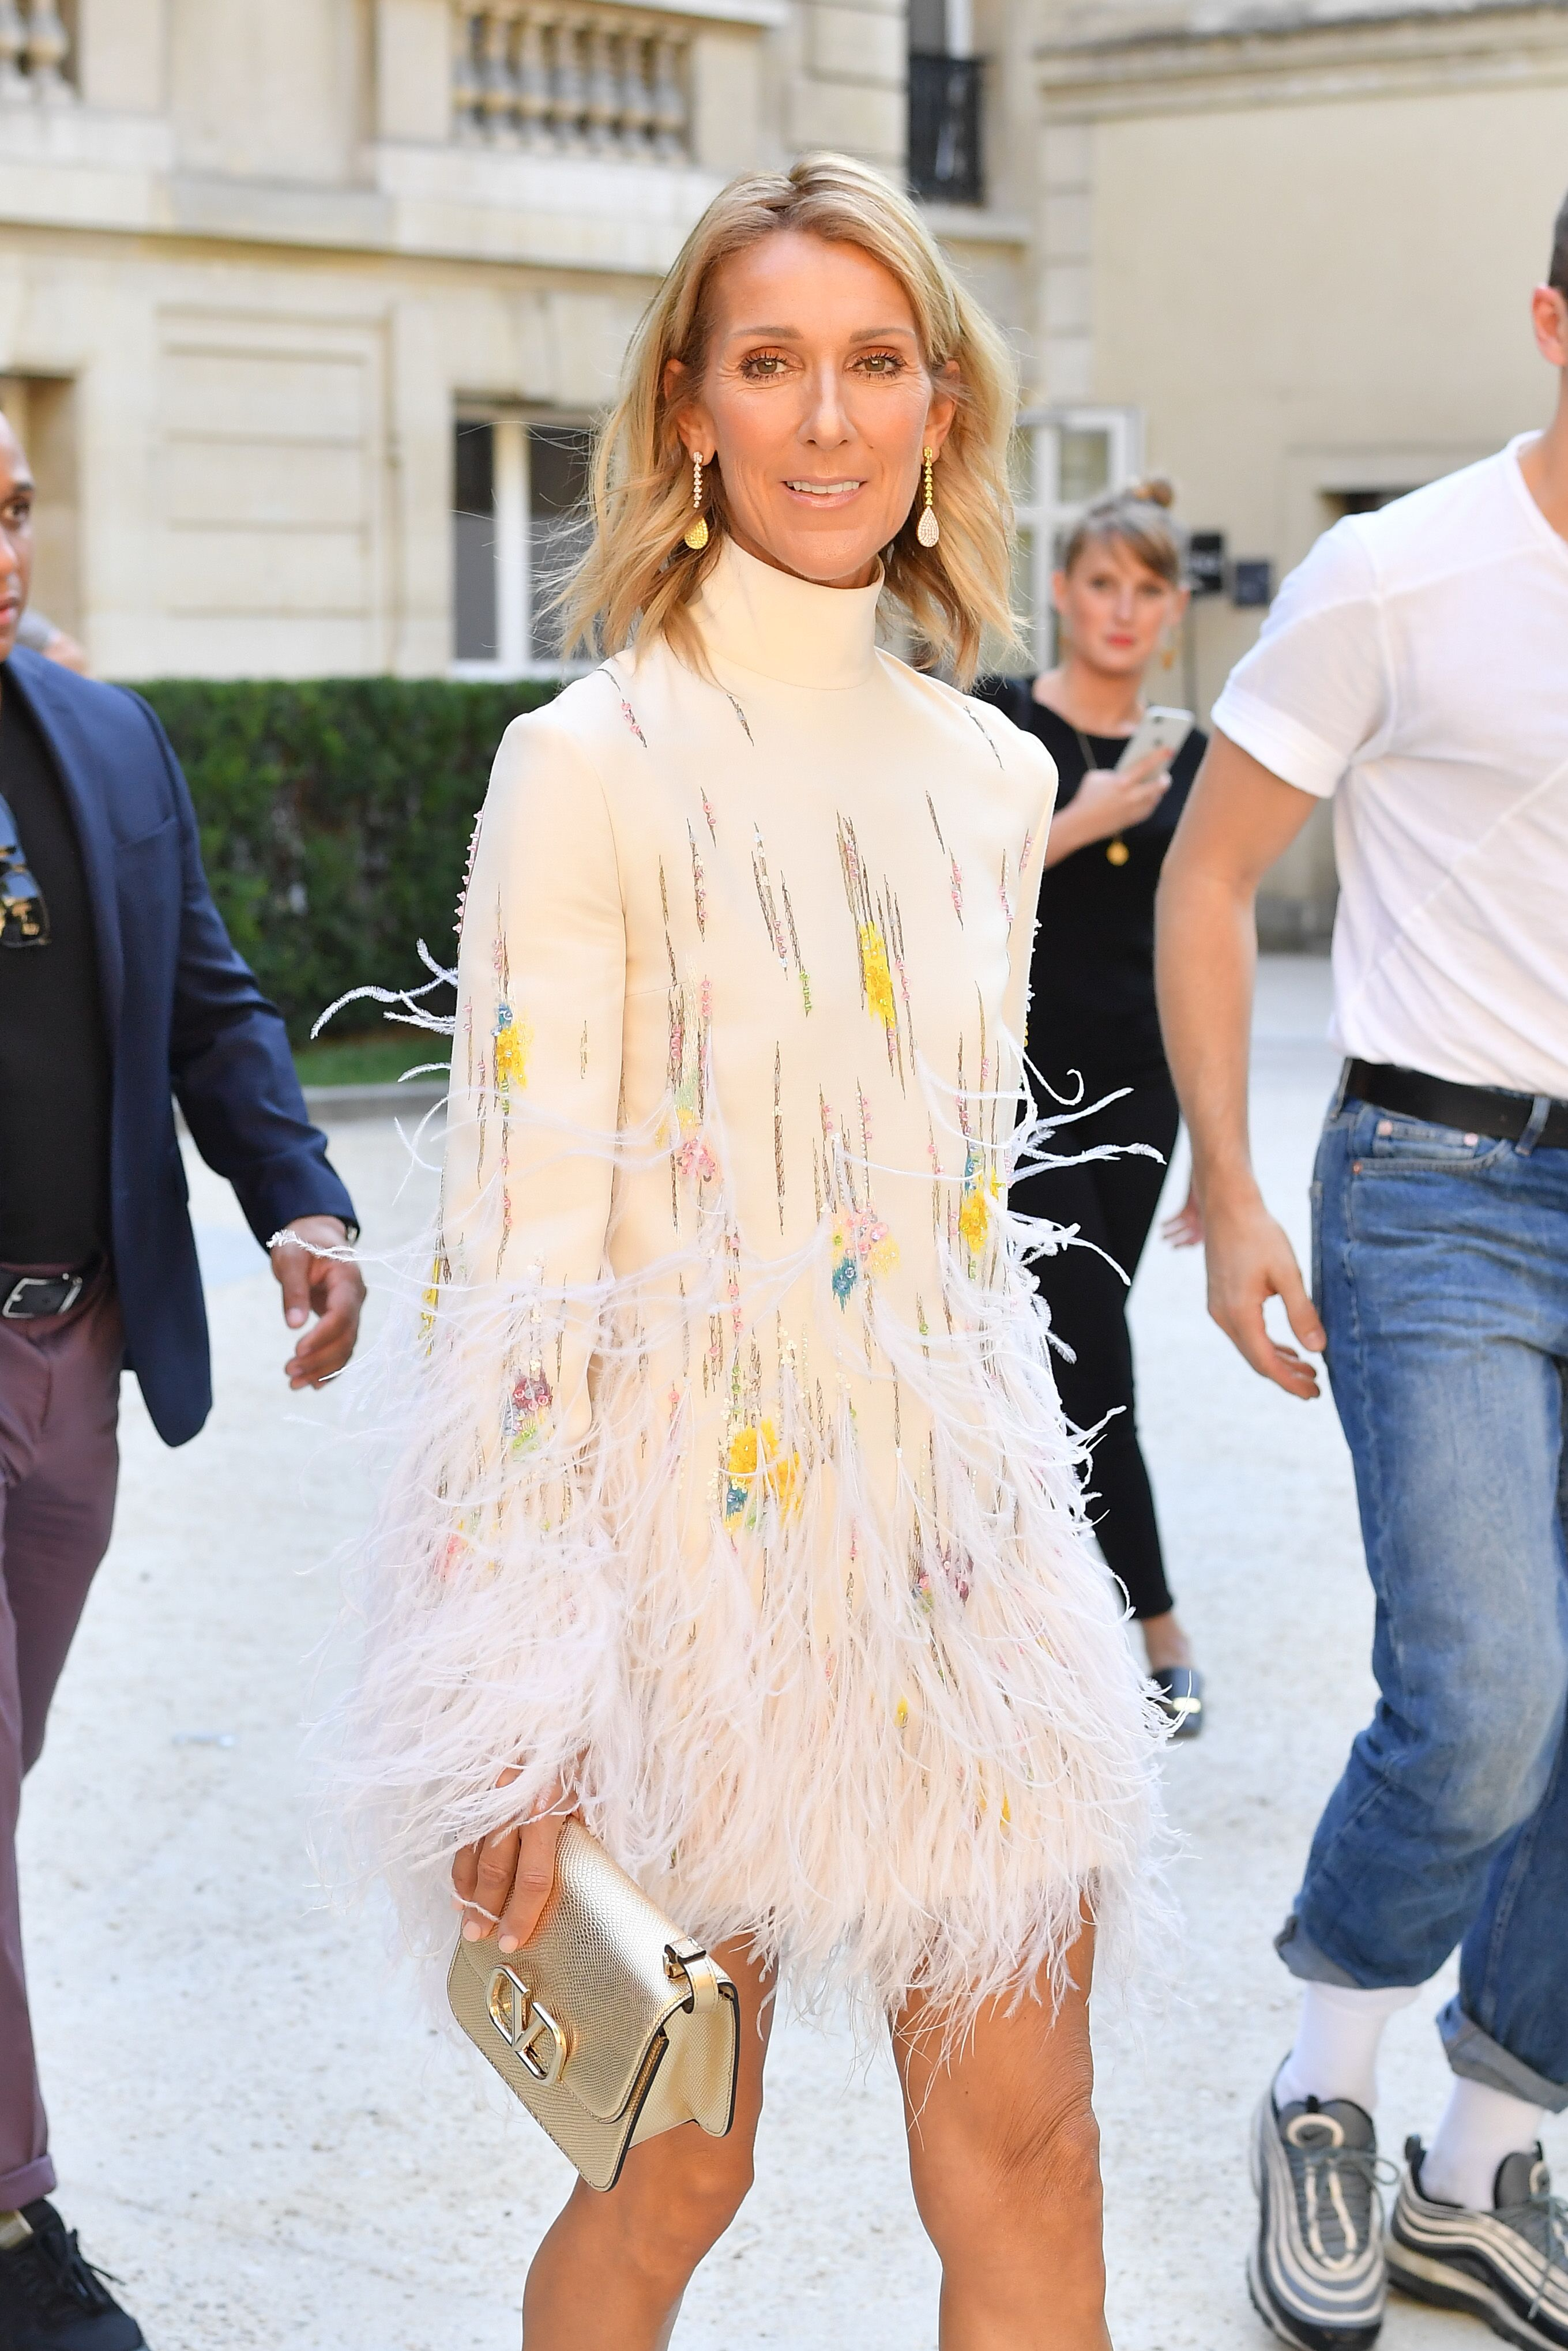 Celine Dion attends the Valentino Haute Couture Fall/Winter 2019 2020 show as part of Paris Fashion Week on July 03, 2019 in Paris, France.   Source: Getty Images